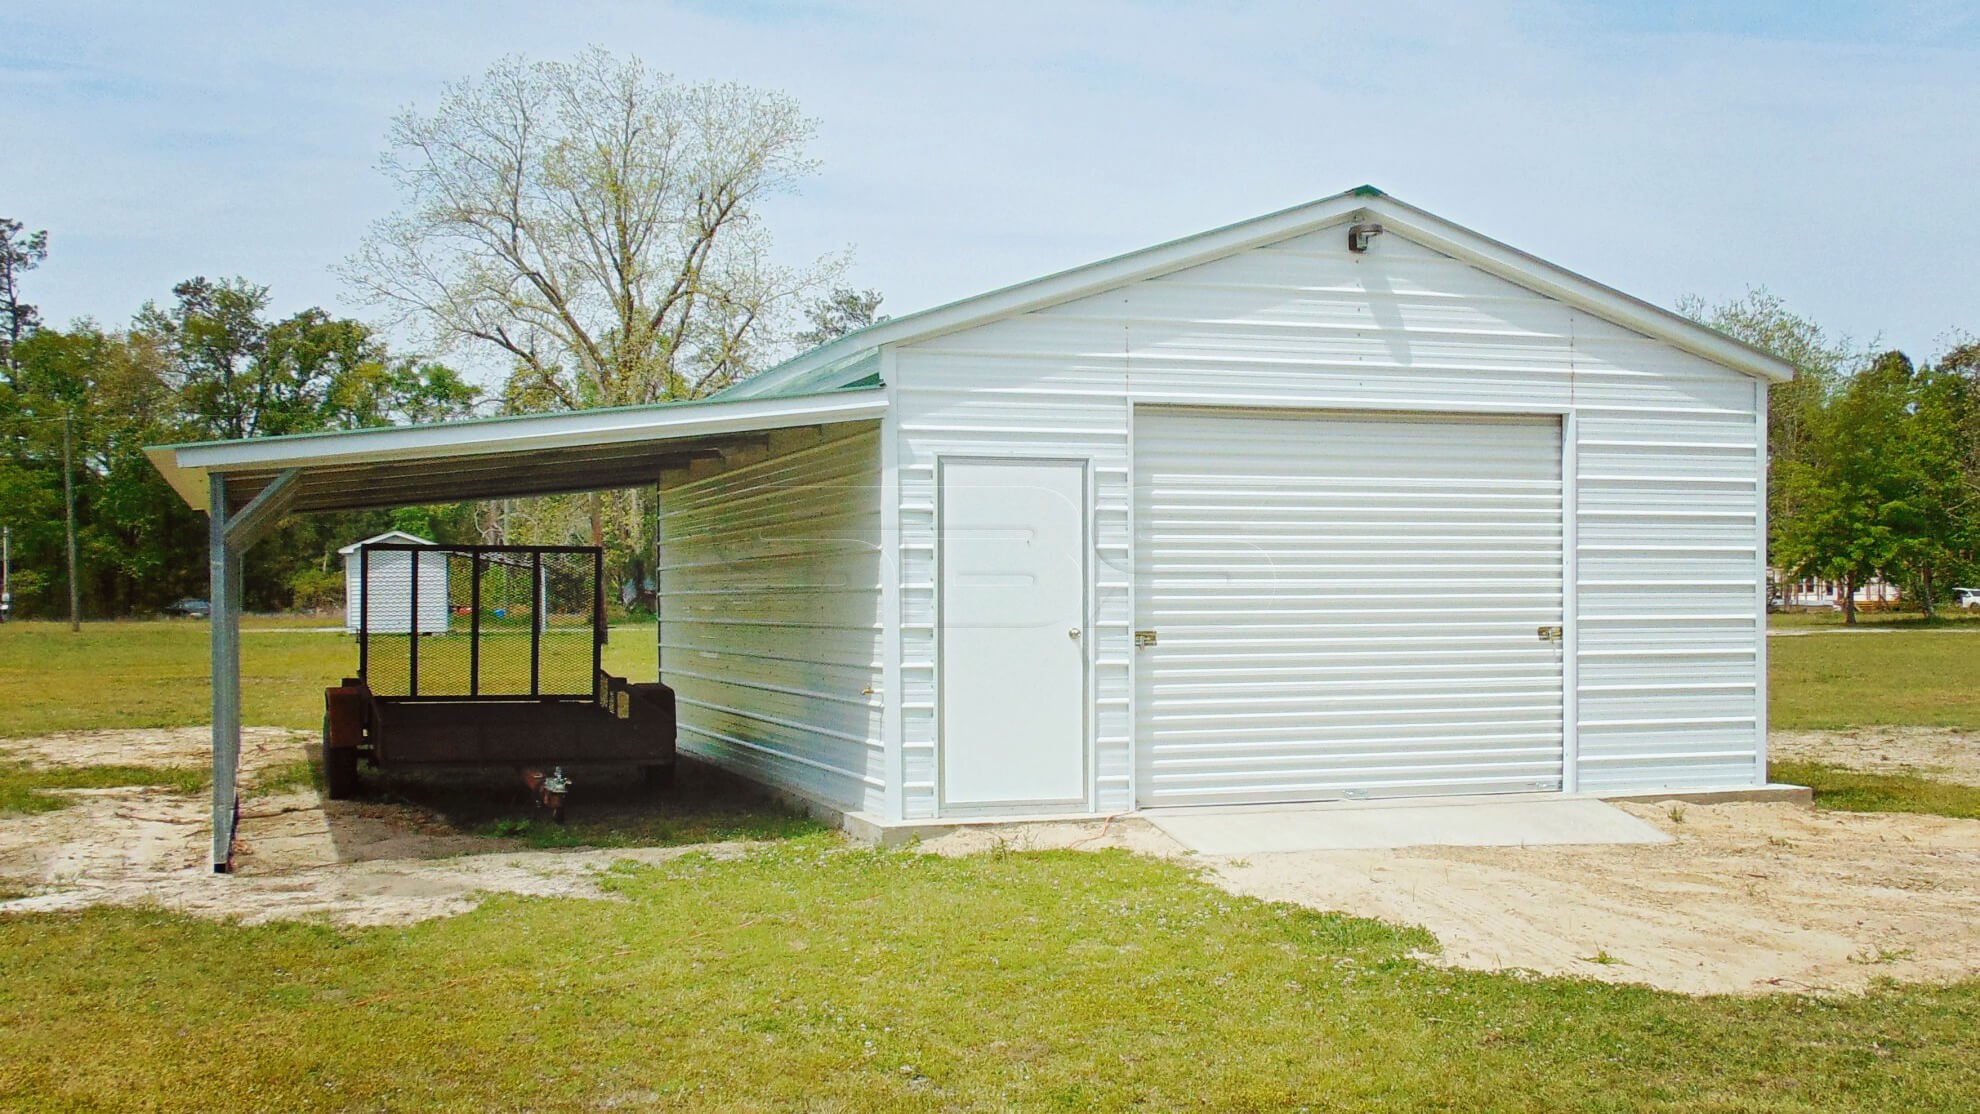 20'x26' Enclosed Garage with Lean-to